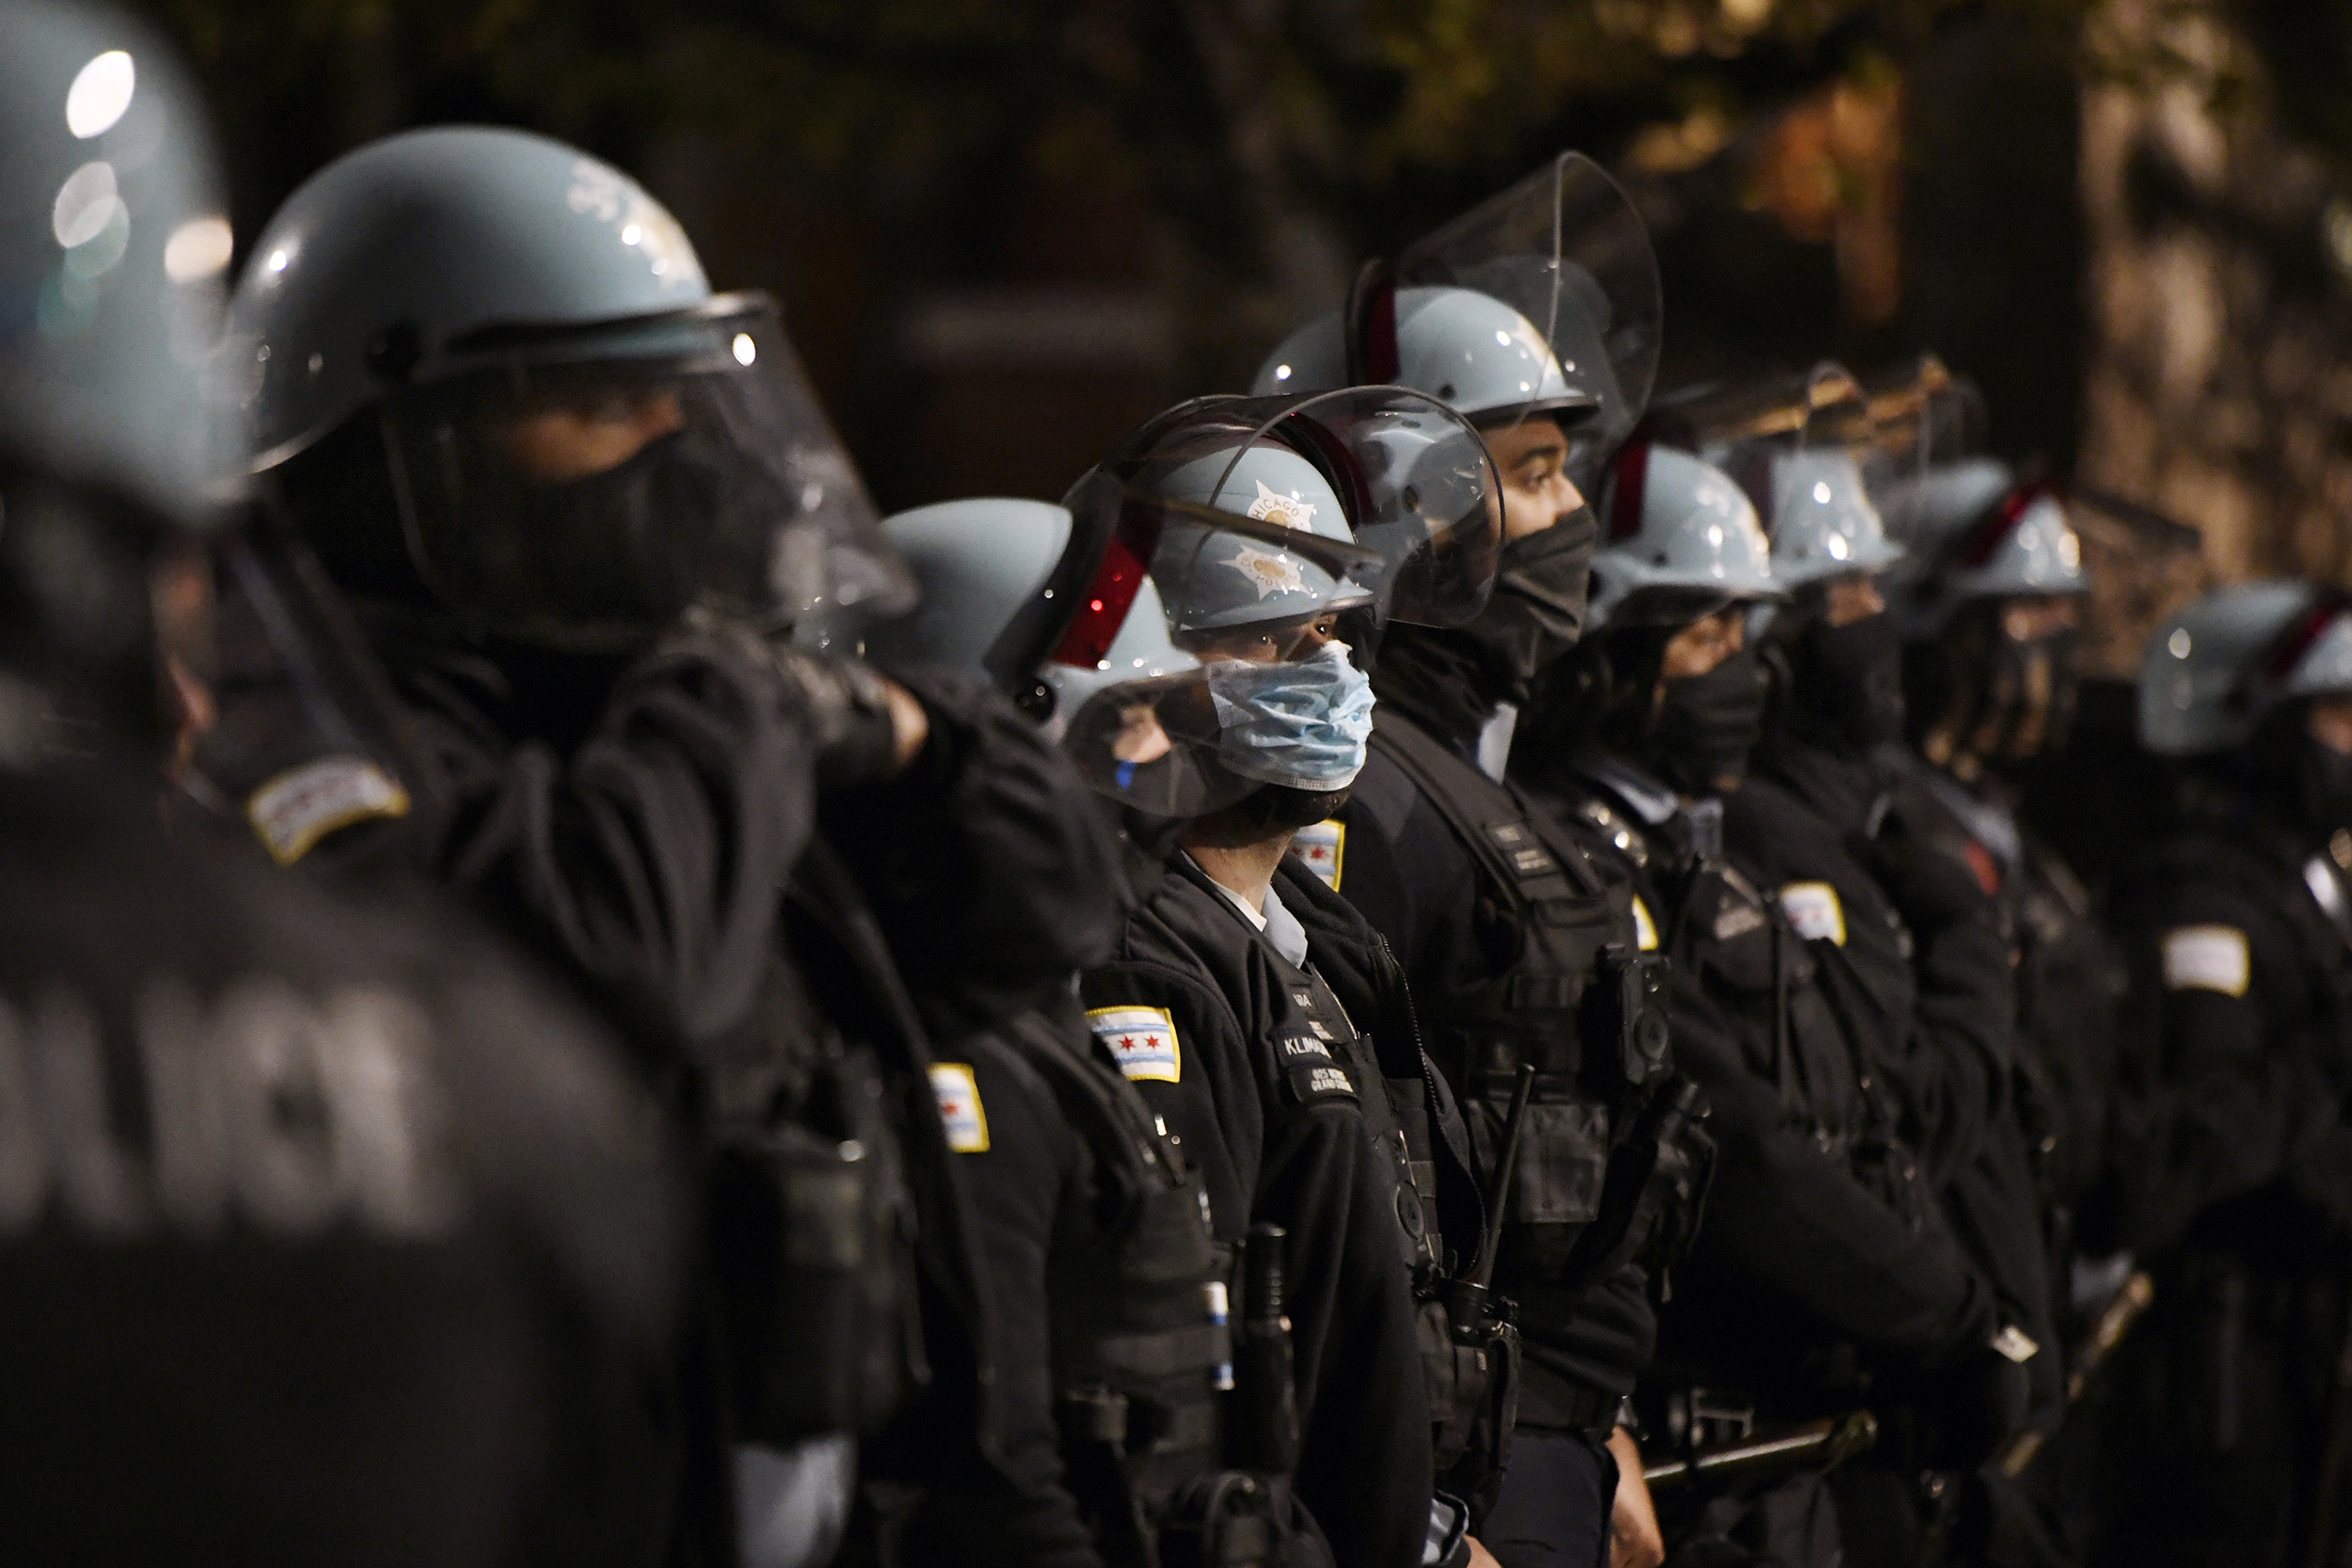 Congress has given up on police reform. Both sides agree about what went wrong.